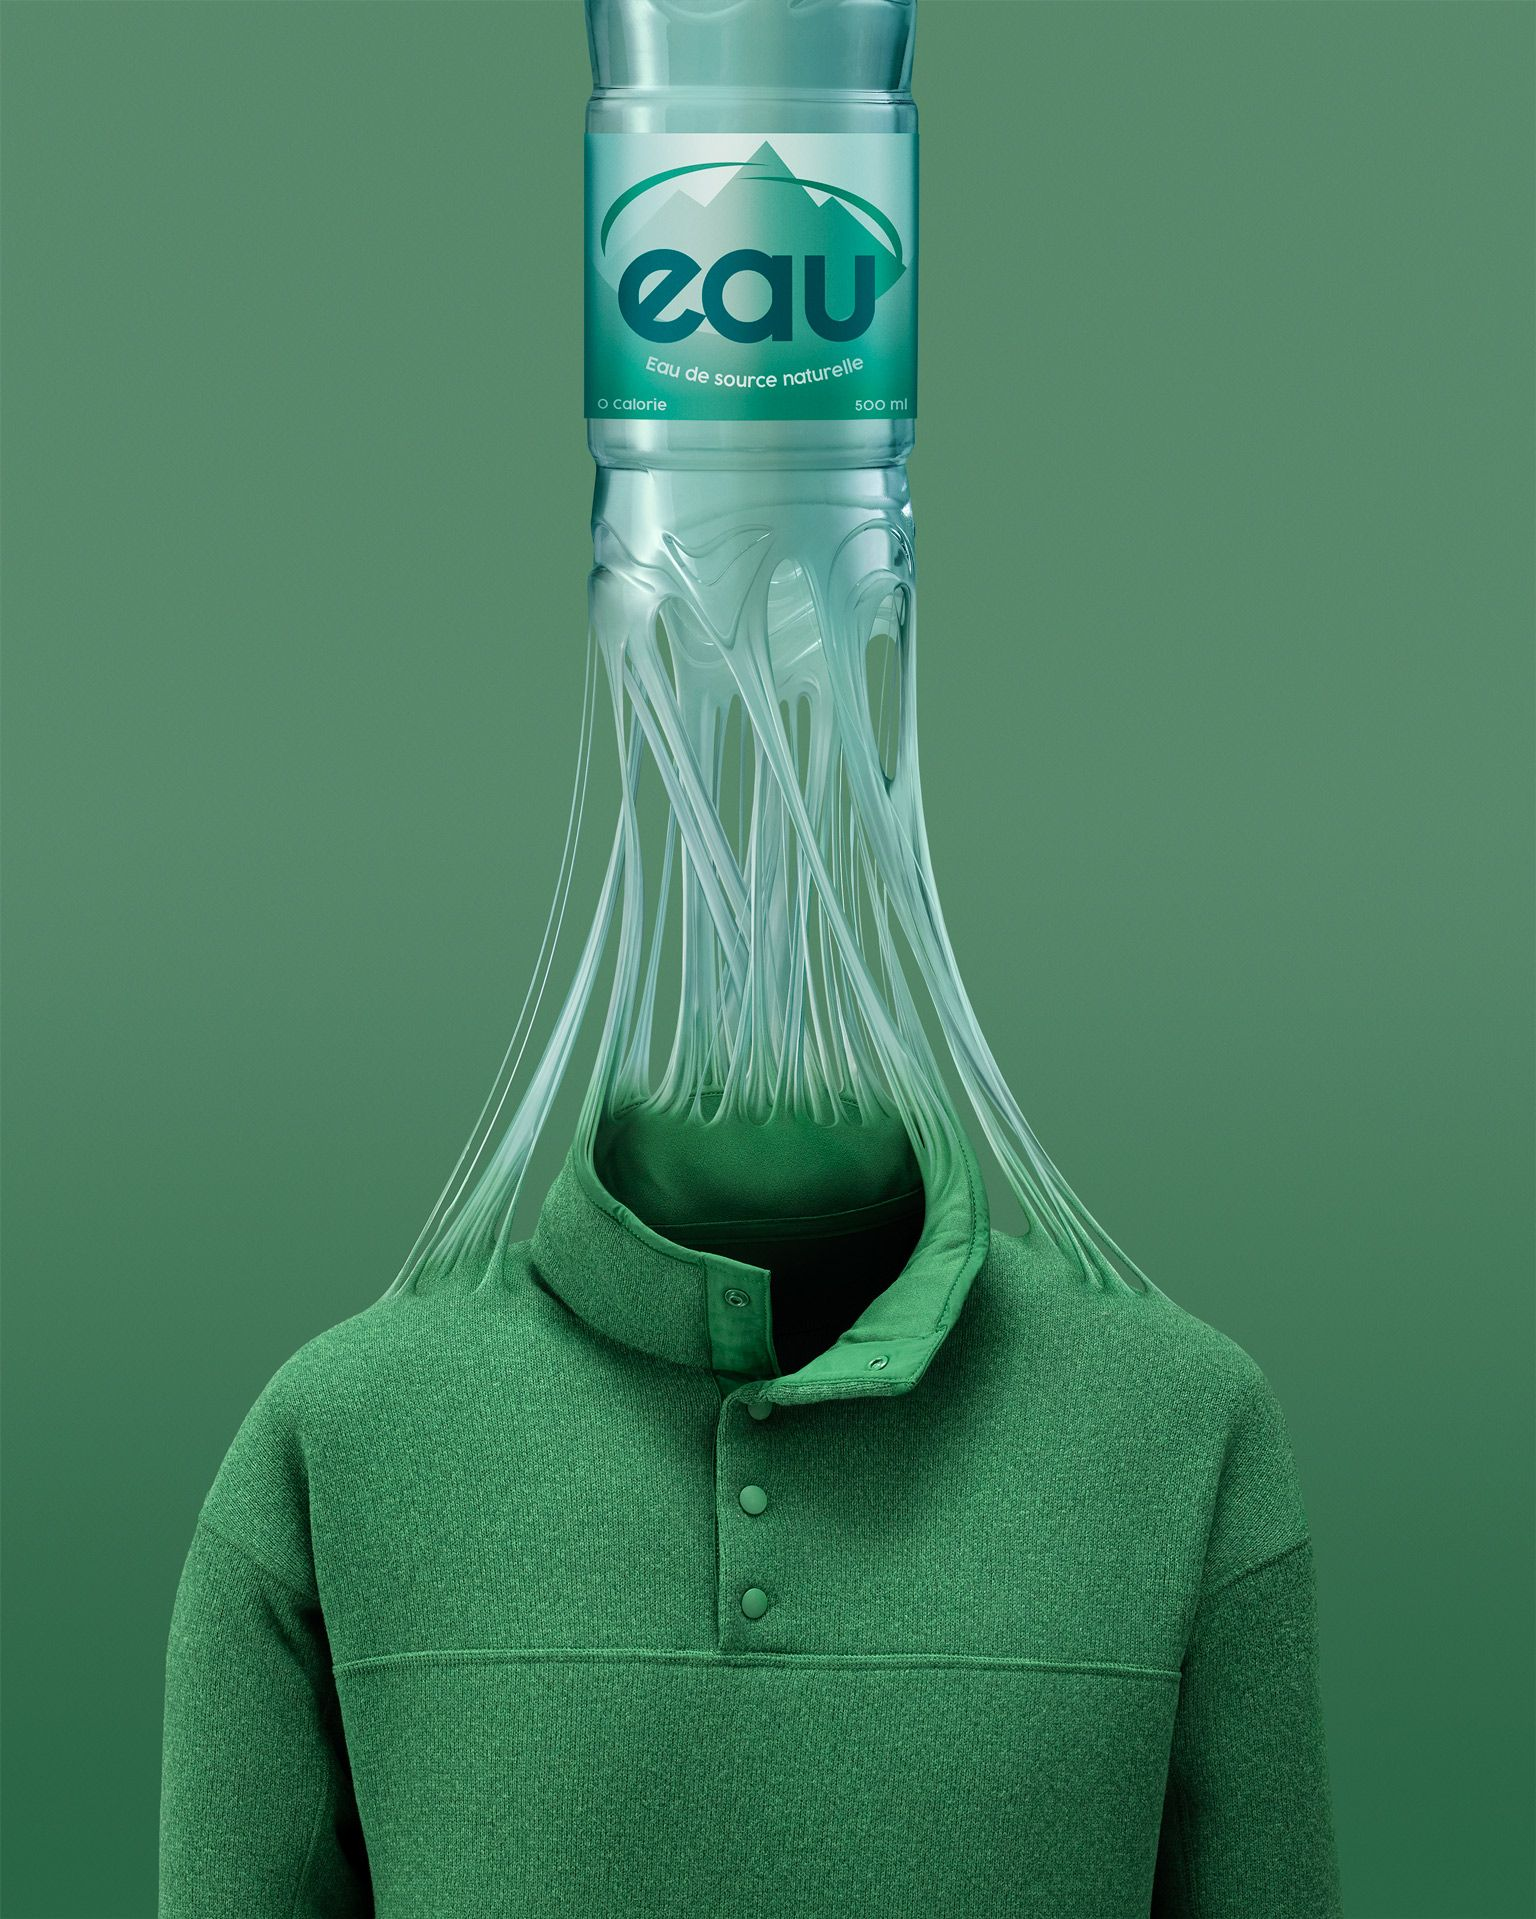 photo manipulation of a plastic water bottle morphing into a sweater by Mathieu Lévesque for Recyc-Québec